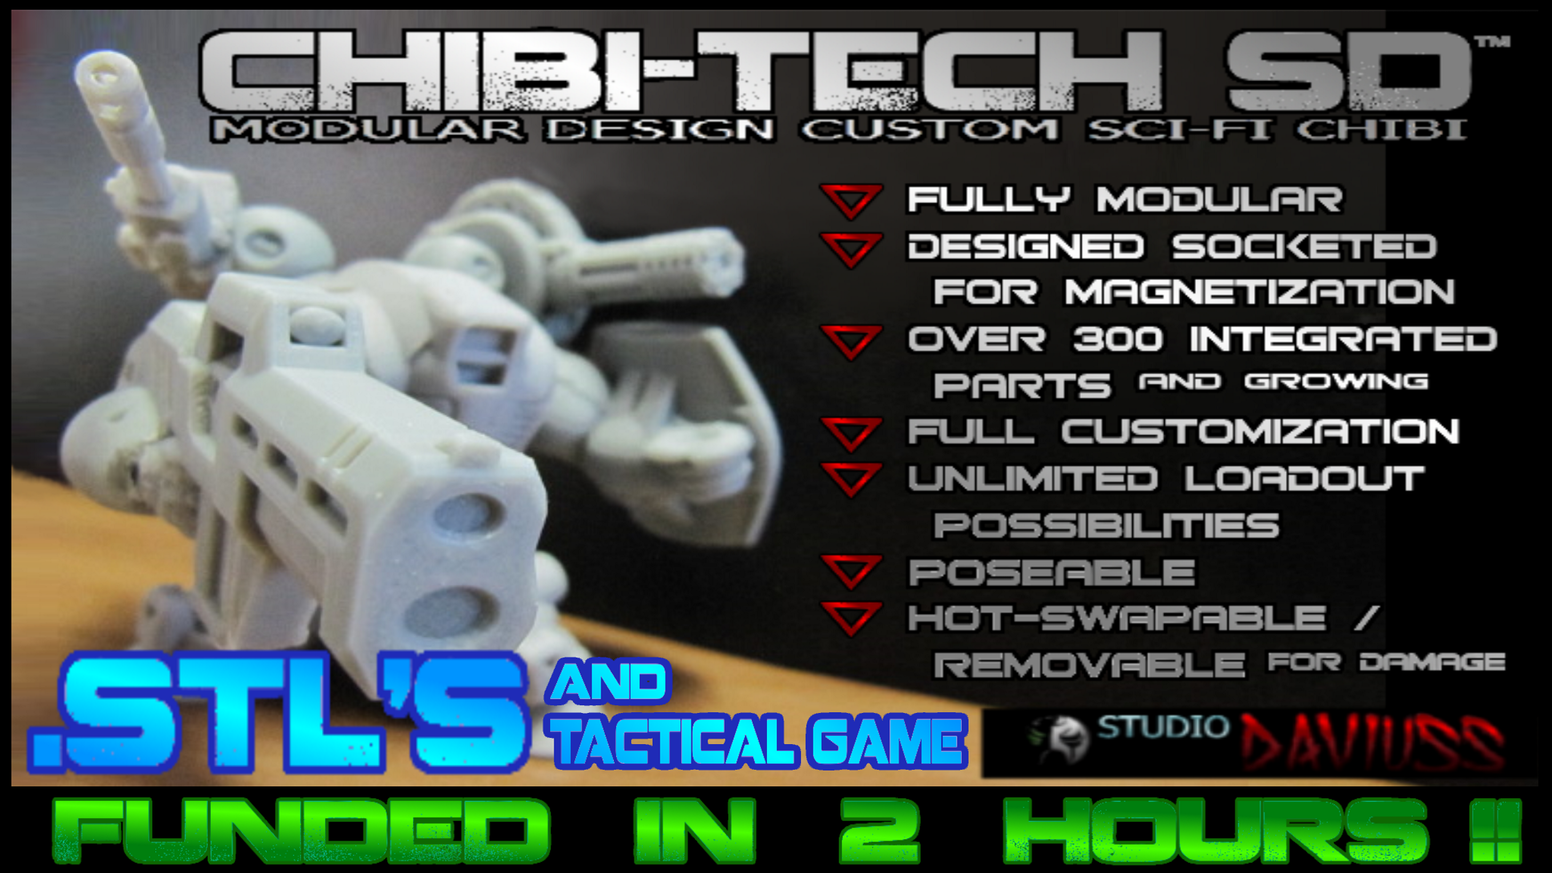 CHIBI (SUPER-DEFORM) MODULAR MECHA .STL FILES & TACTICAL TABLETOP GAME